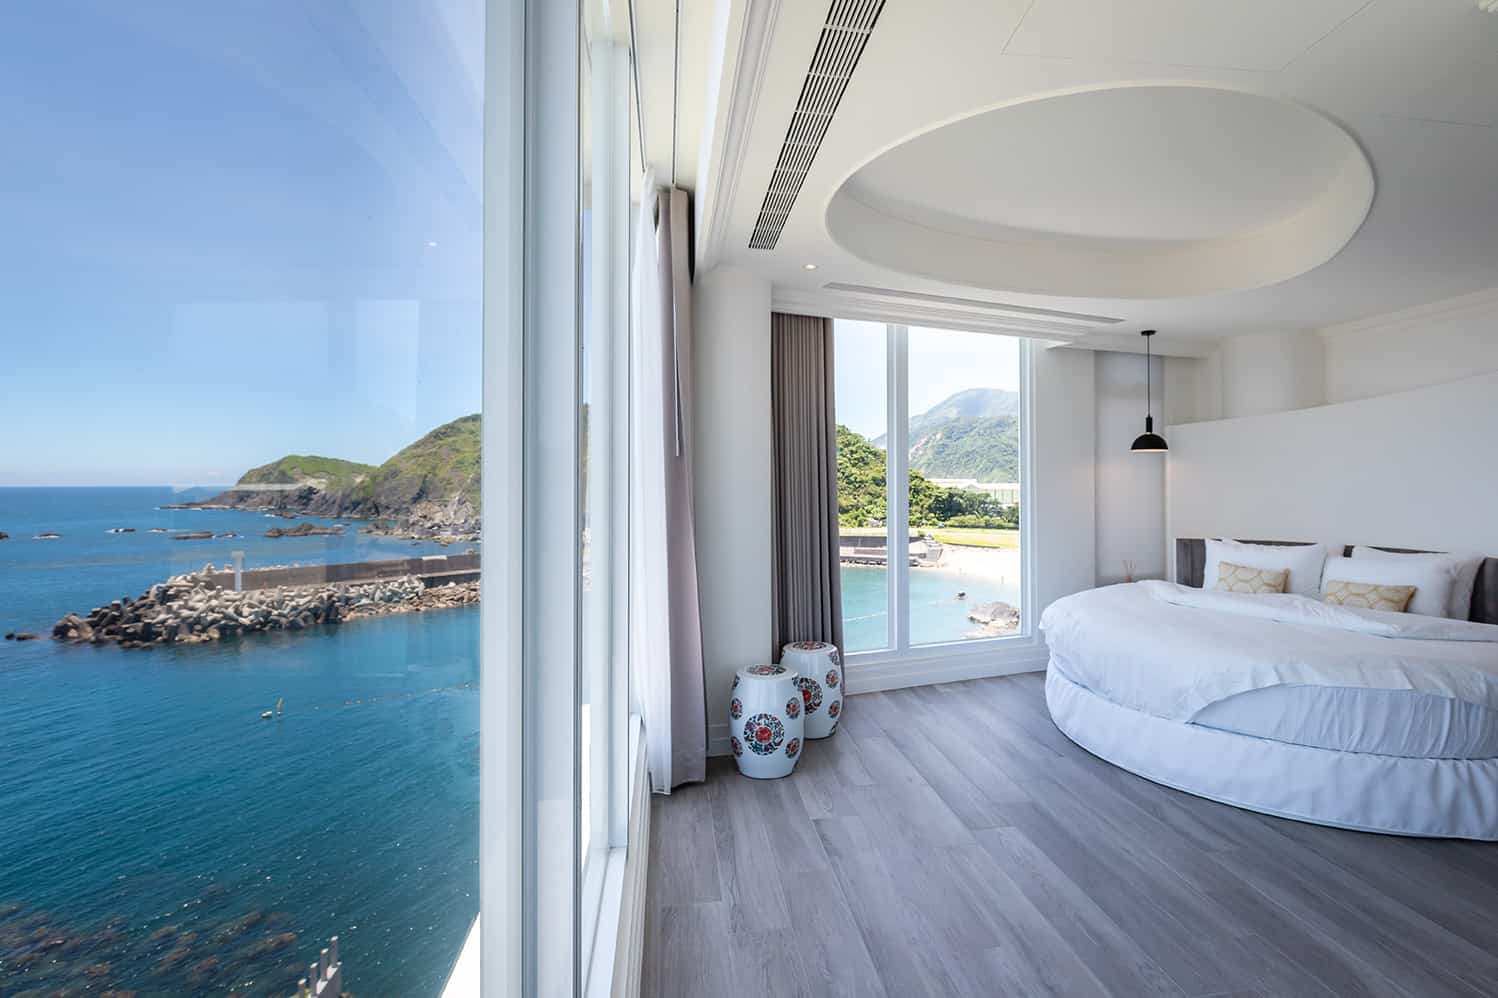 Brighthouse-Panoramic-Ocean-View-06.jpg